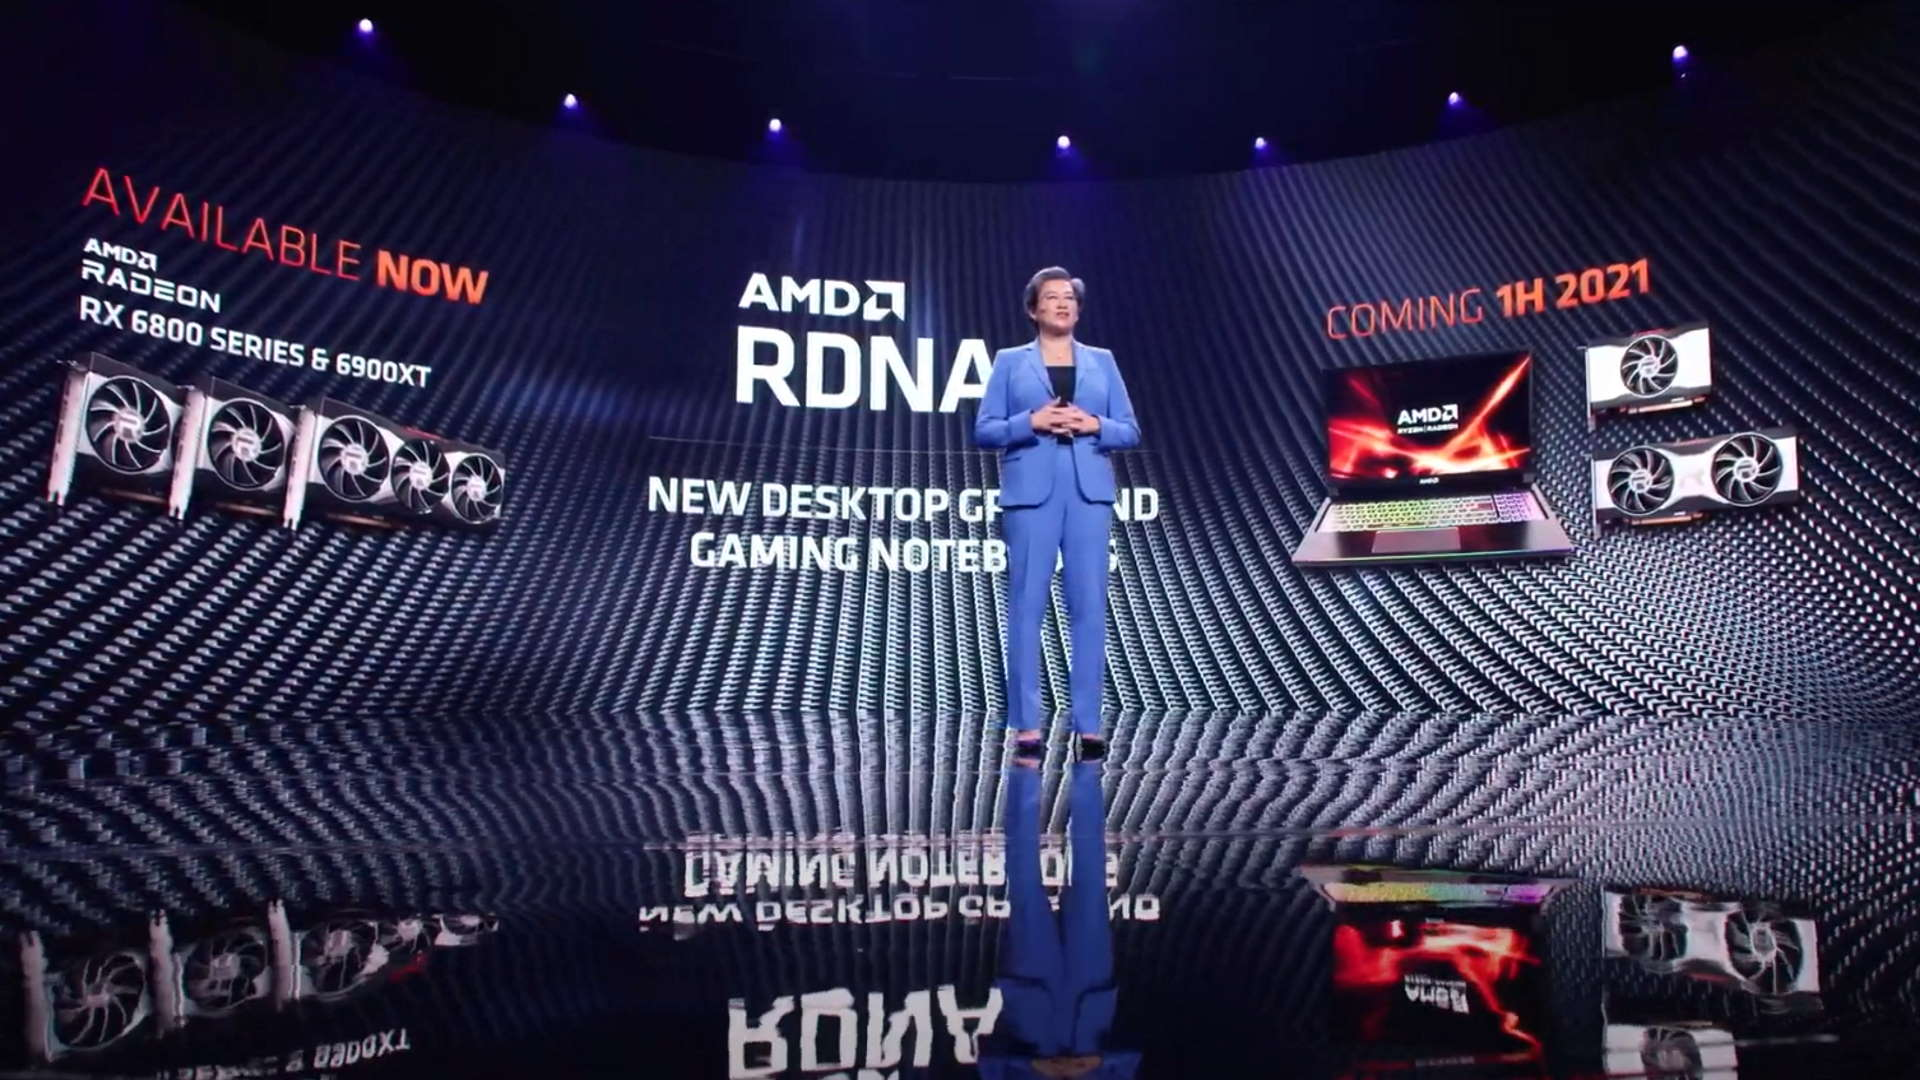 AMD confirms RDNA 2 gaming laptops and mainstream RX 6000 graphics cards in H1 2021